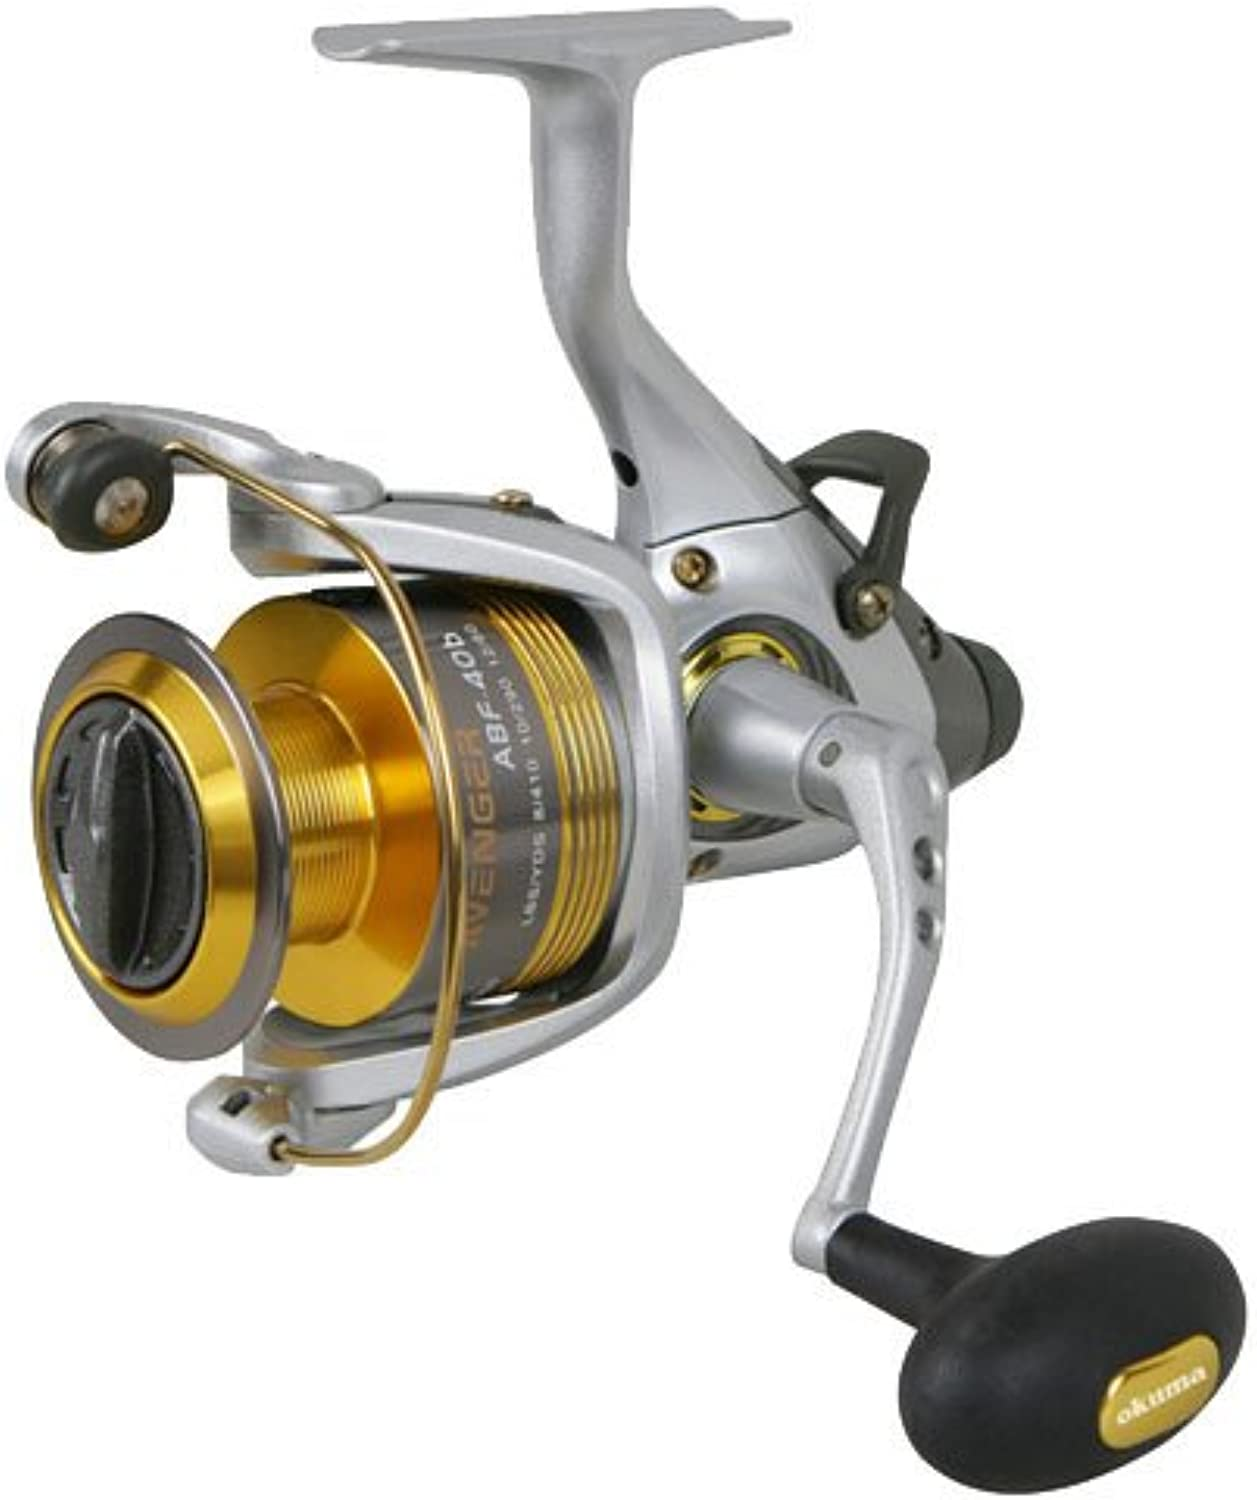 Okuma Avenger Abf BSeries Reel, 4.5 1 Gear Ratio, 6BB + 1RB Bearings, 19 lb Max Drag, 30  Line Retrieve